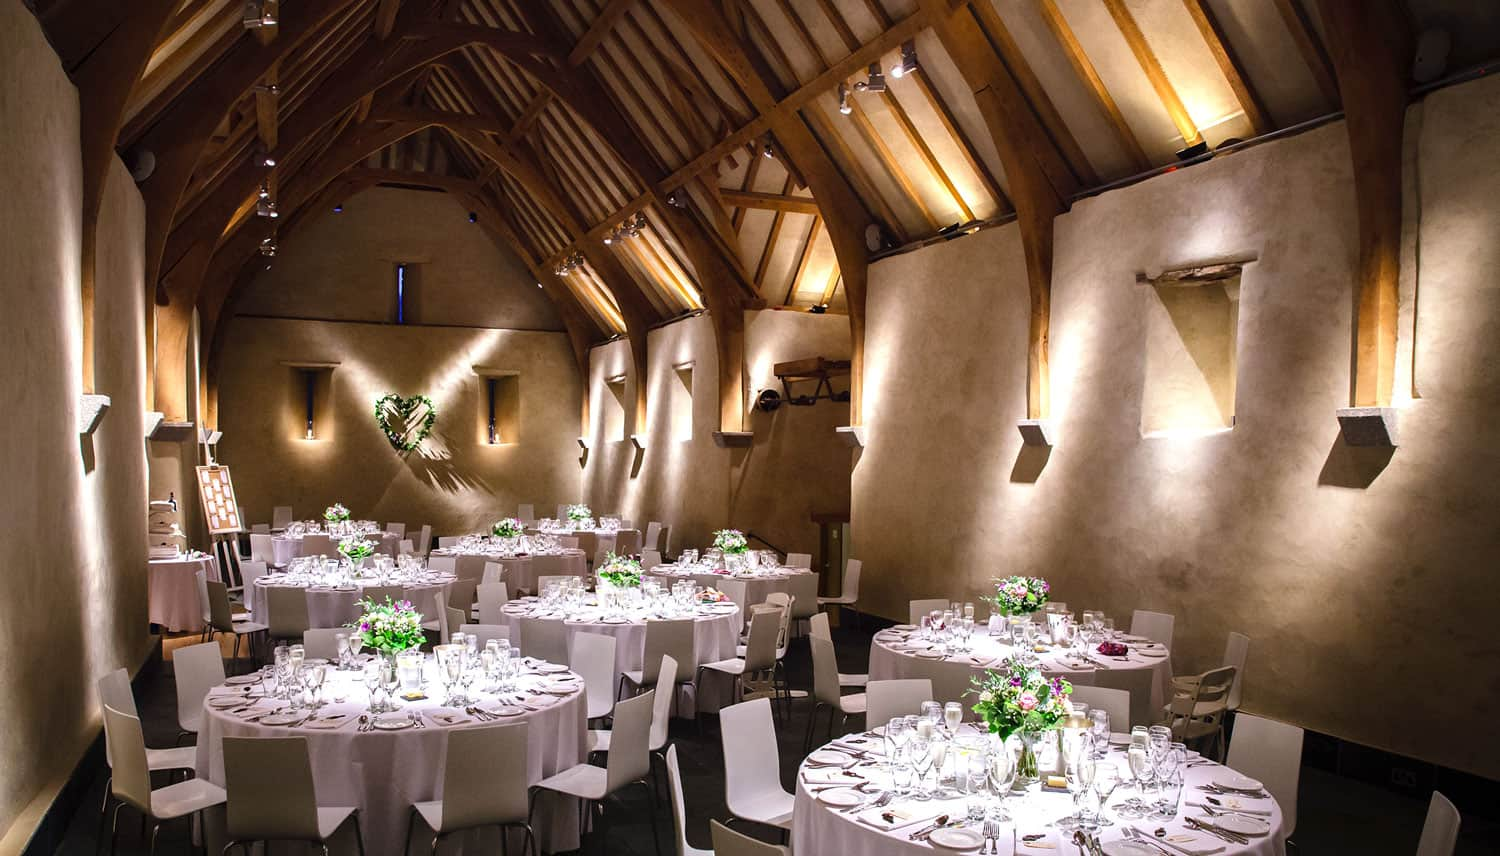 Devon Wedding Venues, The Great Barn Devon